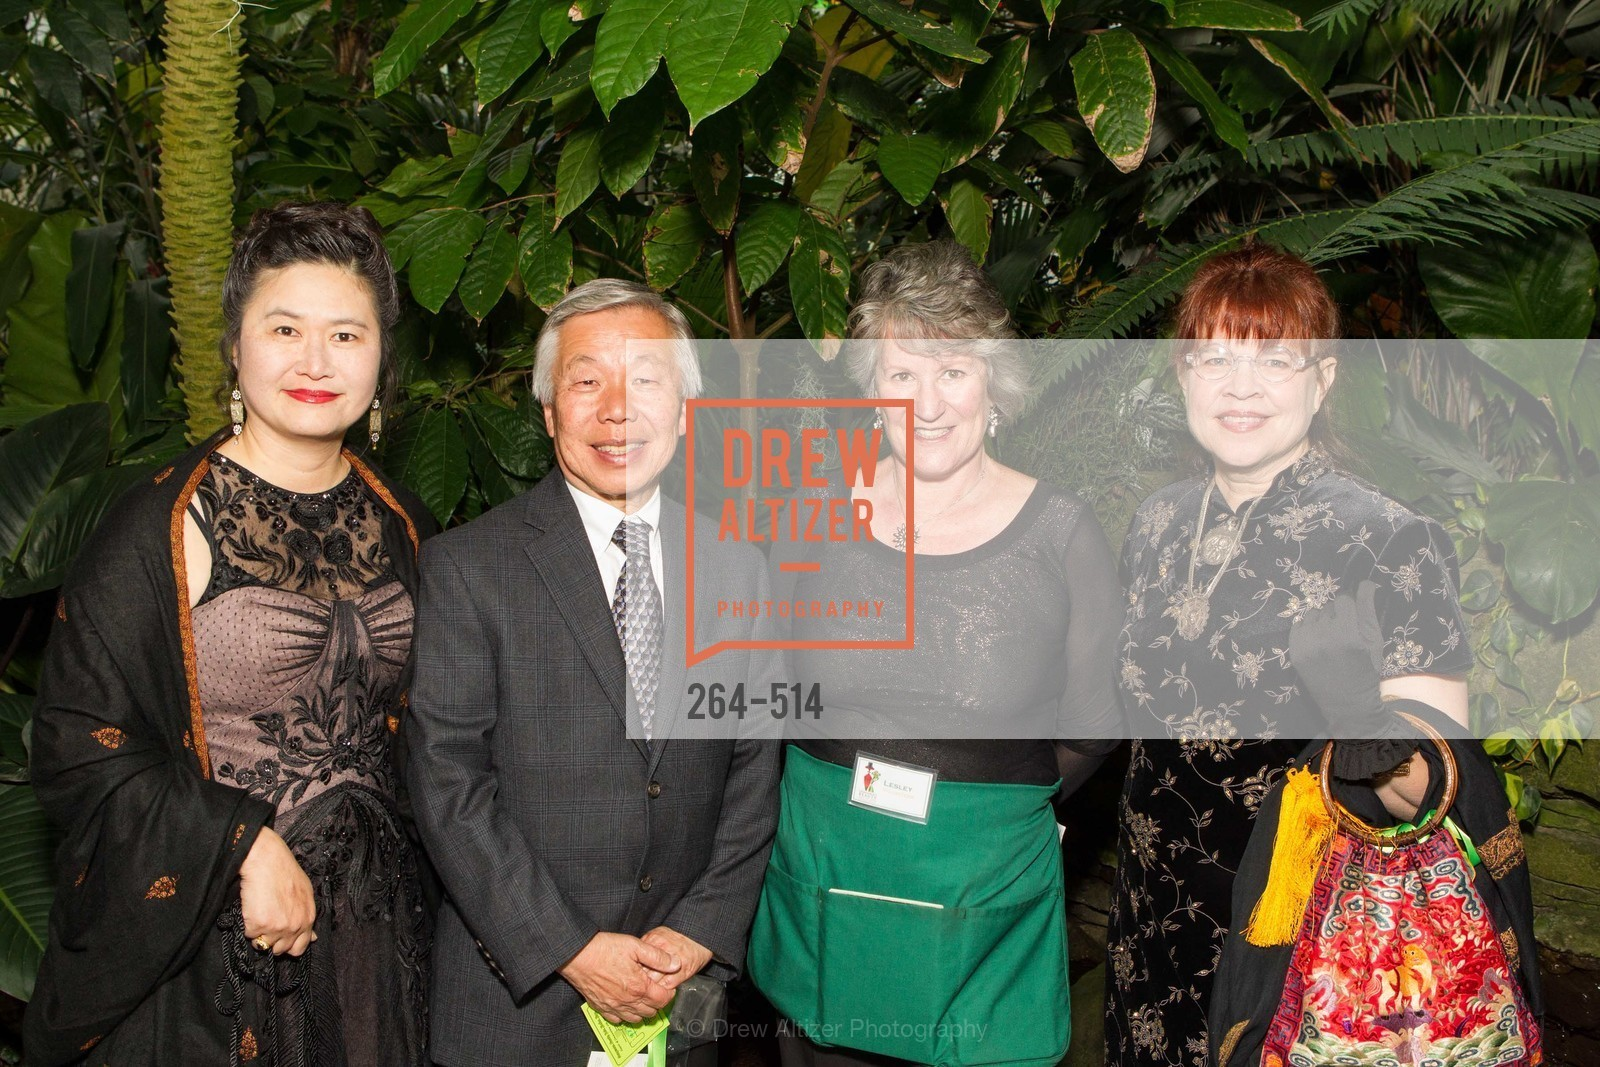 Seik Yee, Ernie Ng, Lesley Stansfield, Teresa Swift, SF Conservatory of Flowers - CHOMP They came from the swamp, US. US, April 10th, 2014,Drew Altizer, Drew Altizer Photography, full-service agency, private events, San Francisco photographer, photographer california